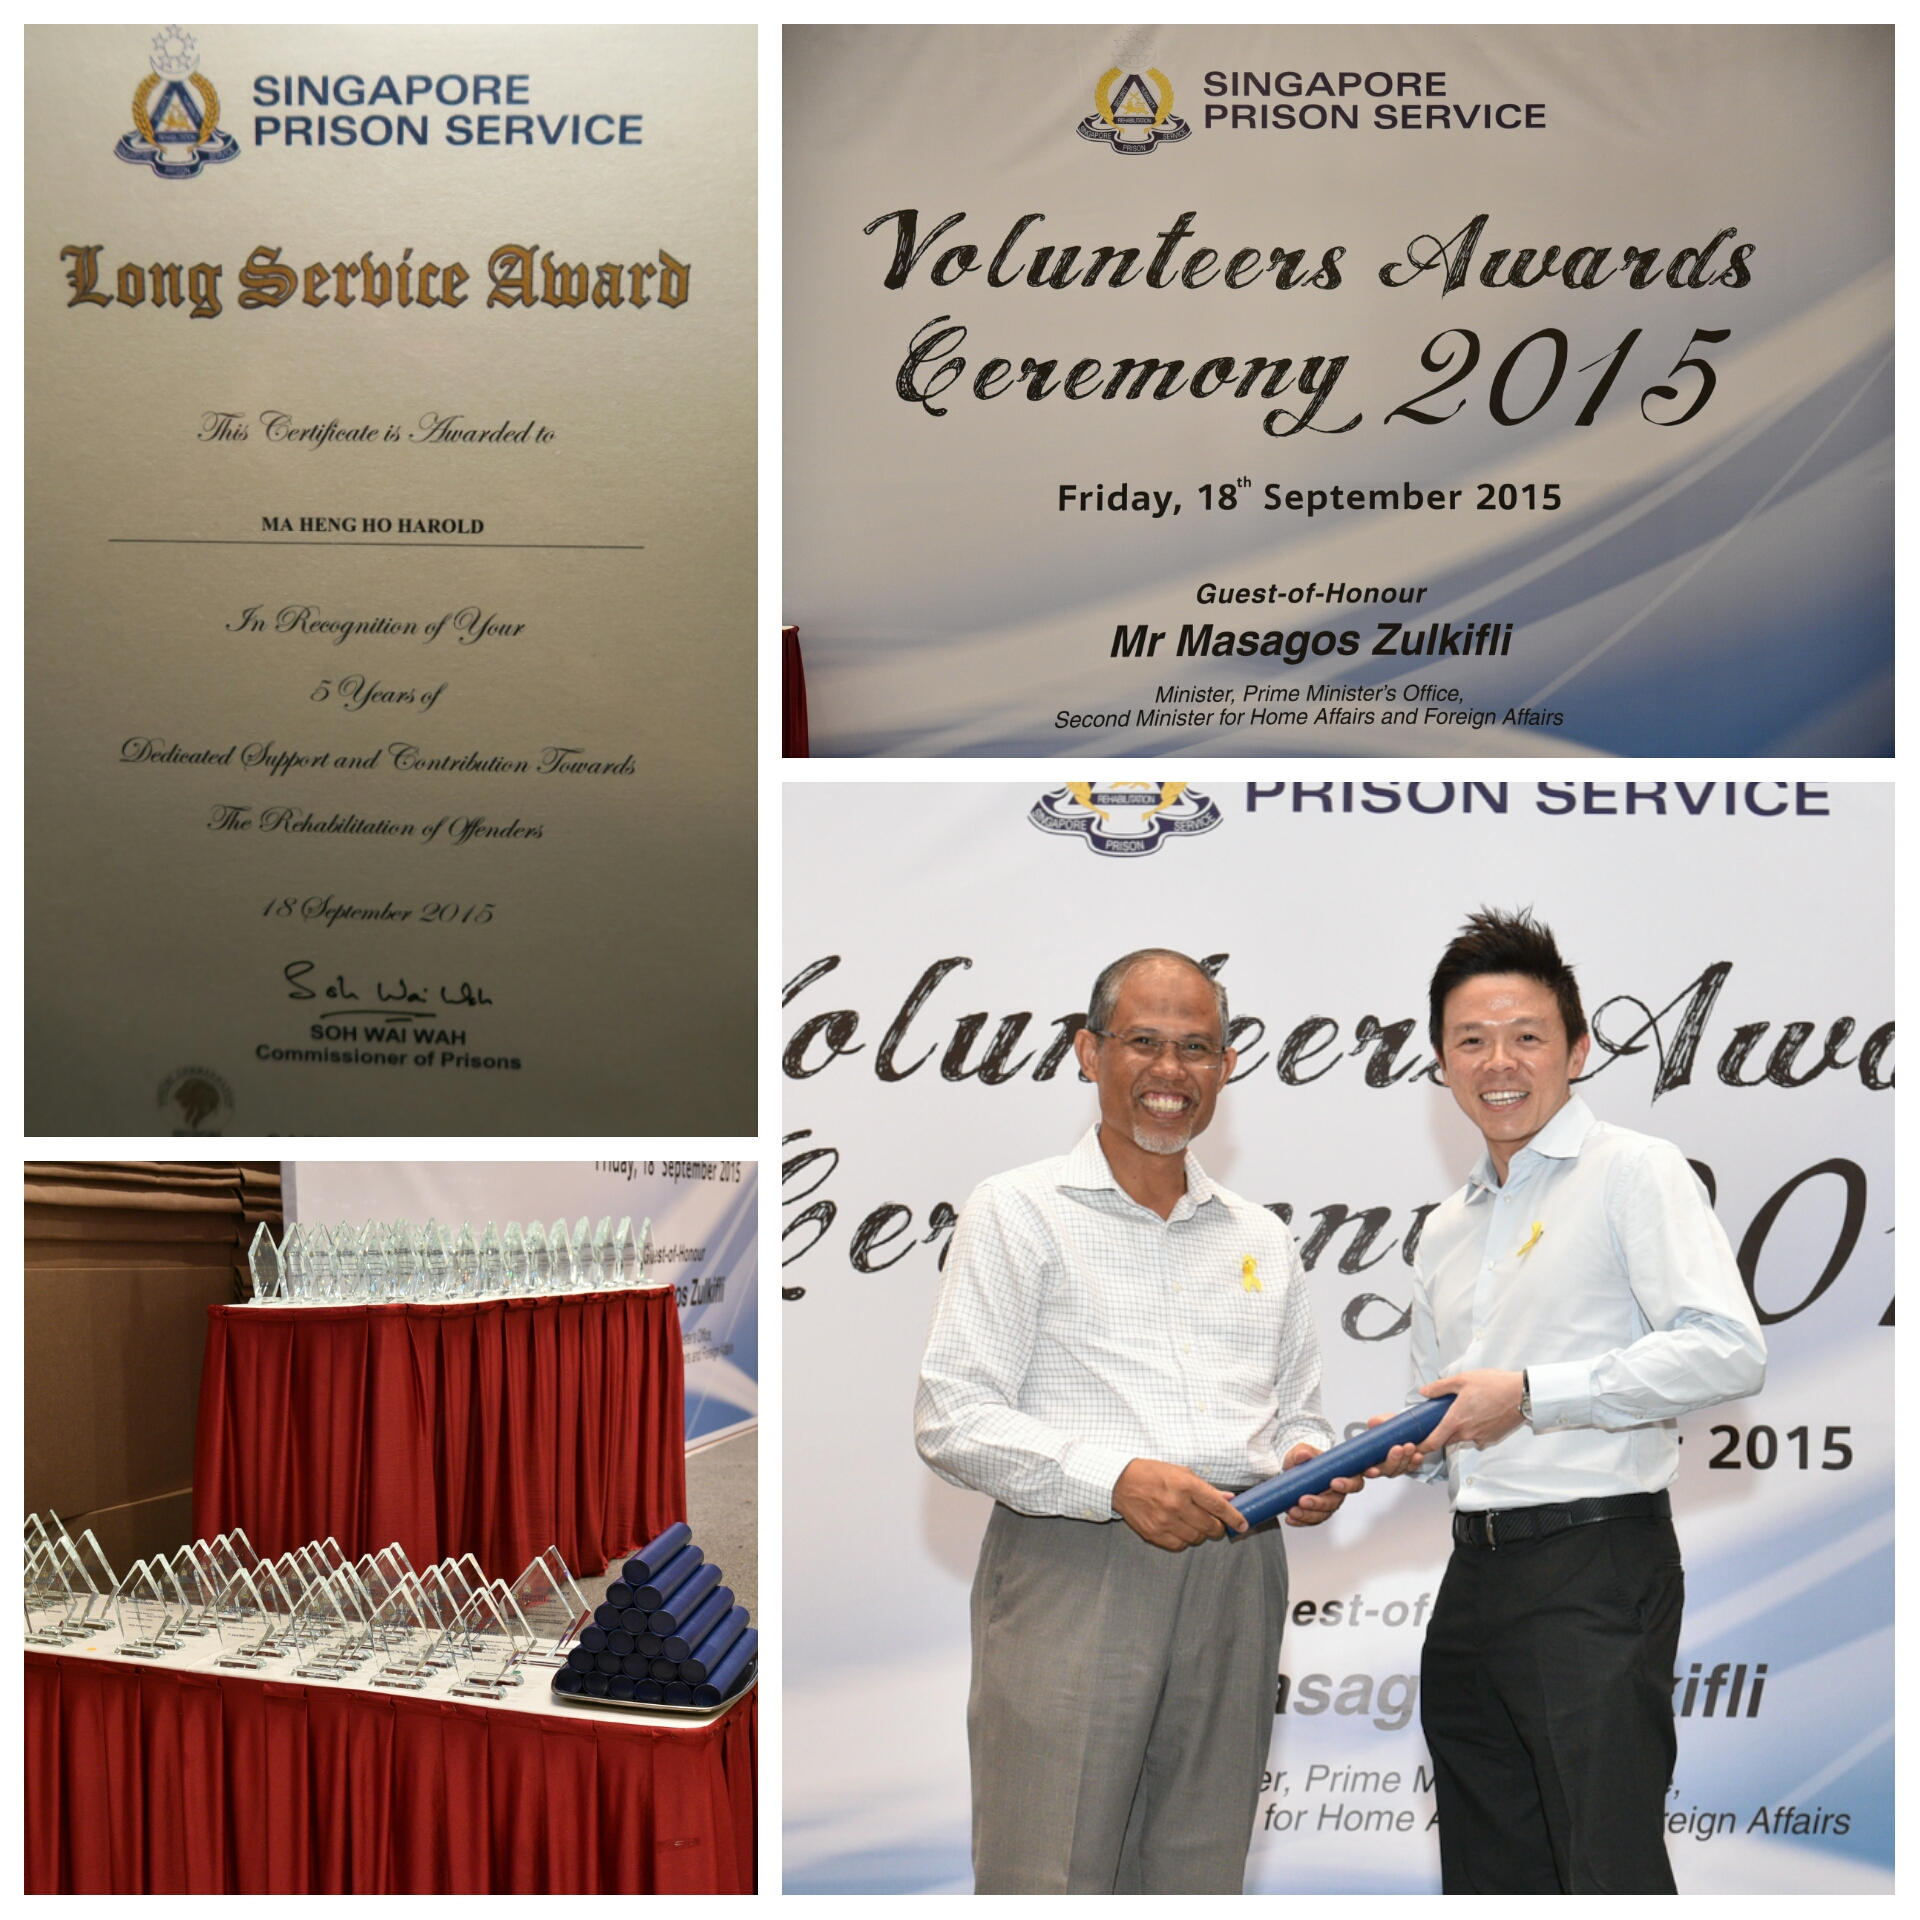 Dr. Ma is proud to receive the 5 year long service award for his work with ex-offenders